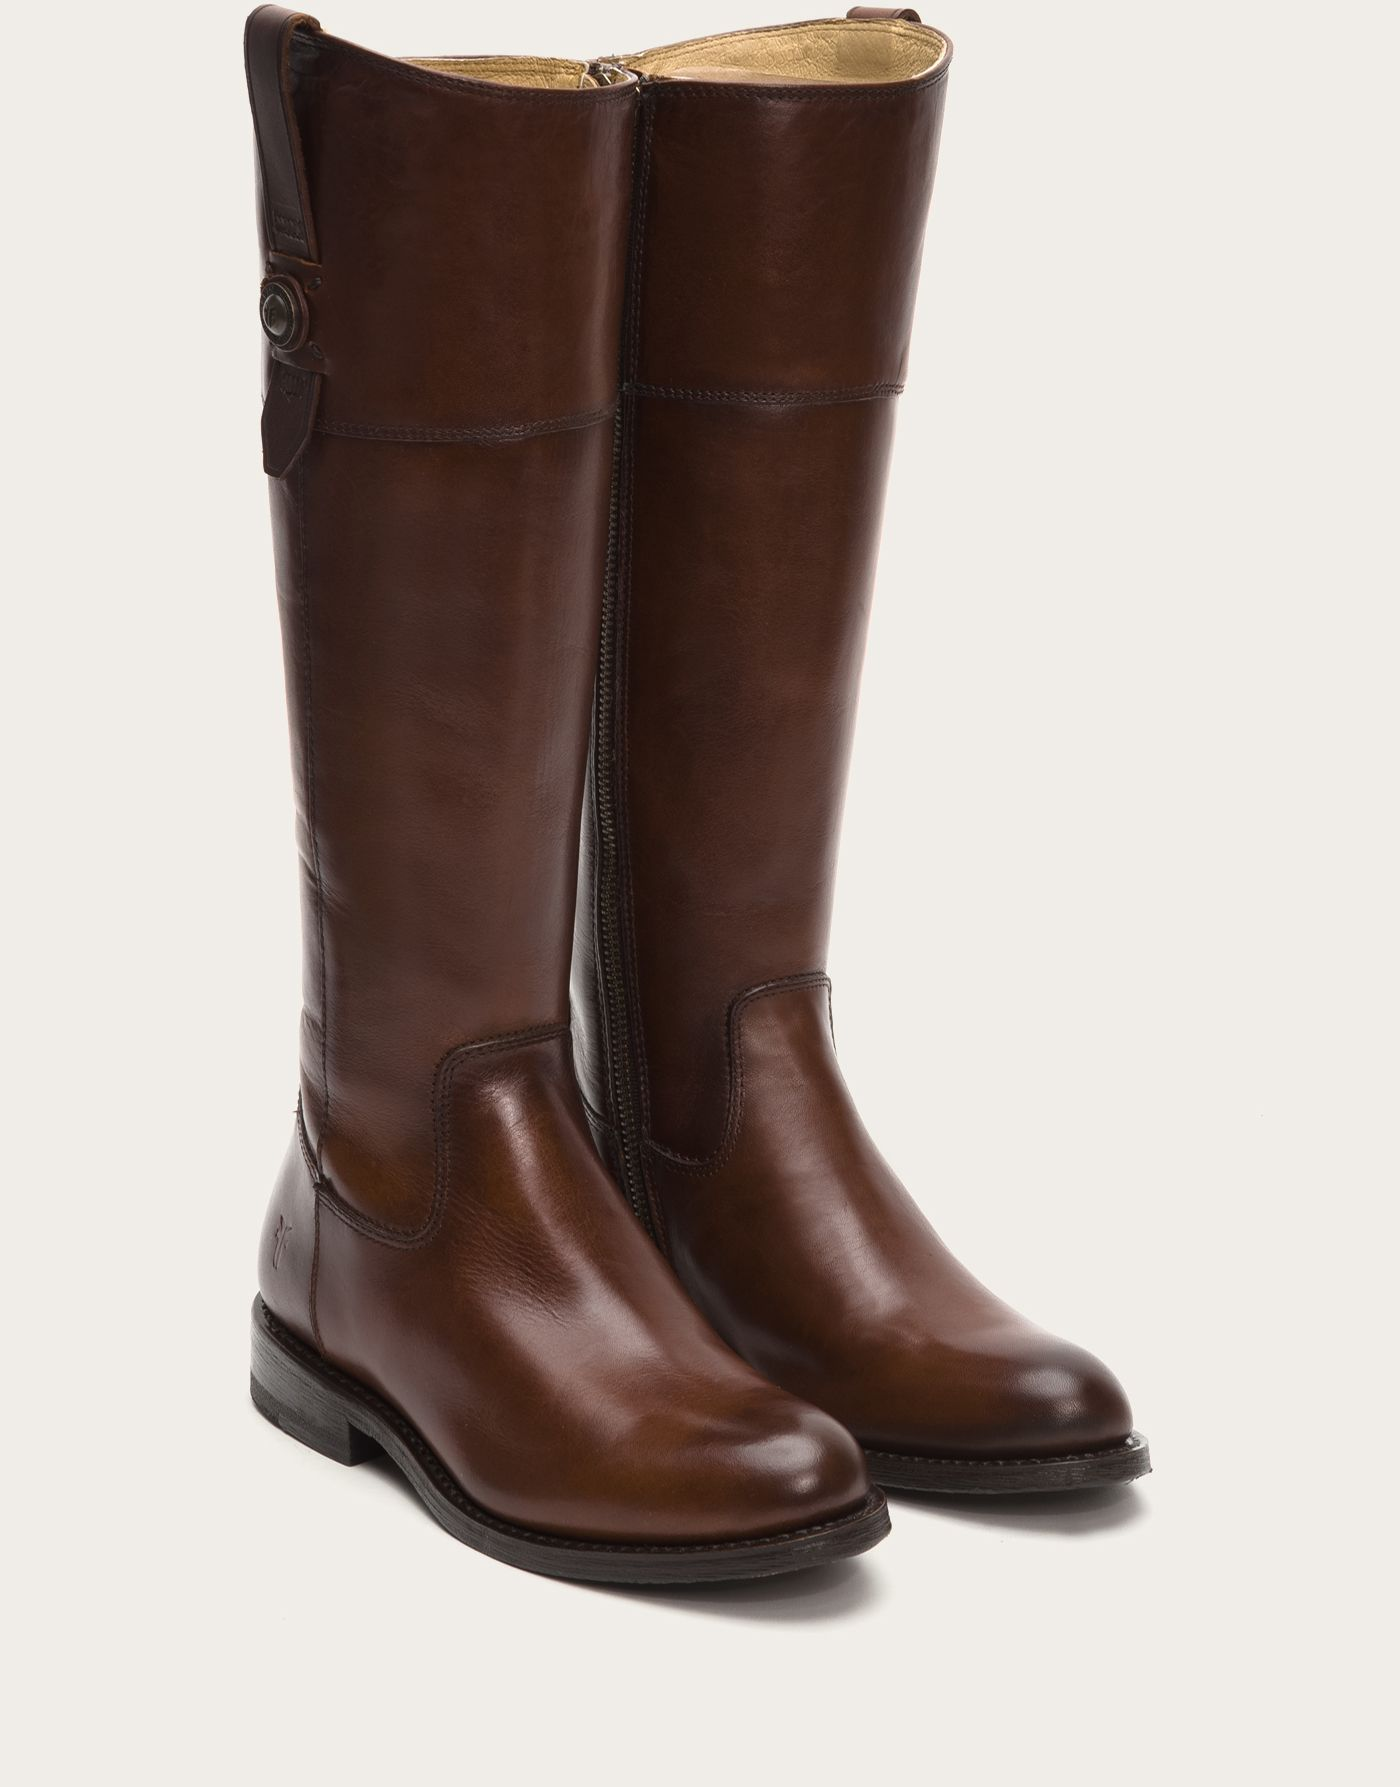 A modern classic riding boot. FRYE | Jayden Button Tall - Black